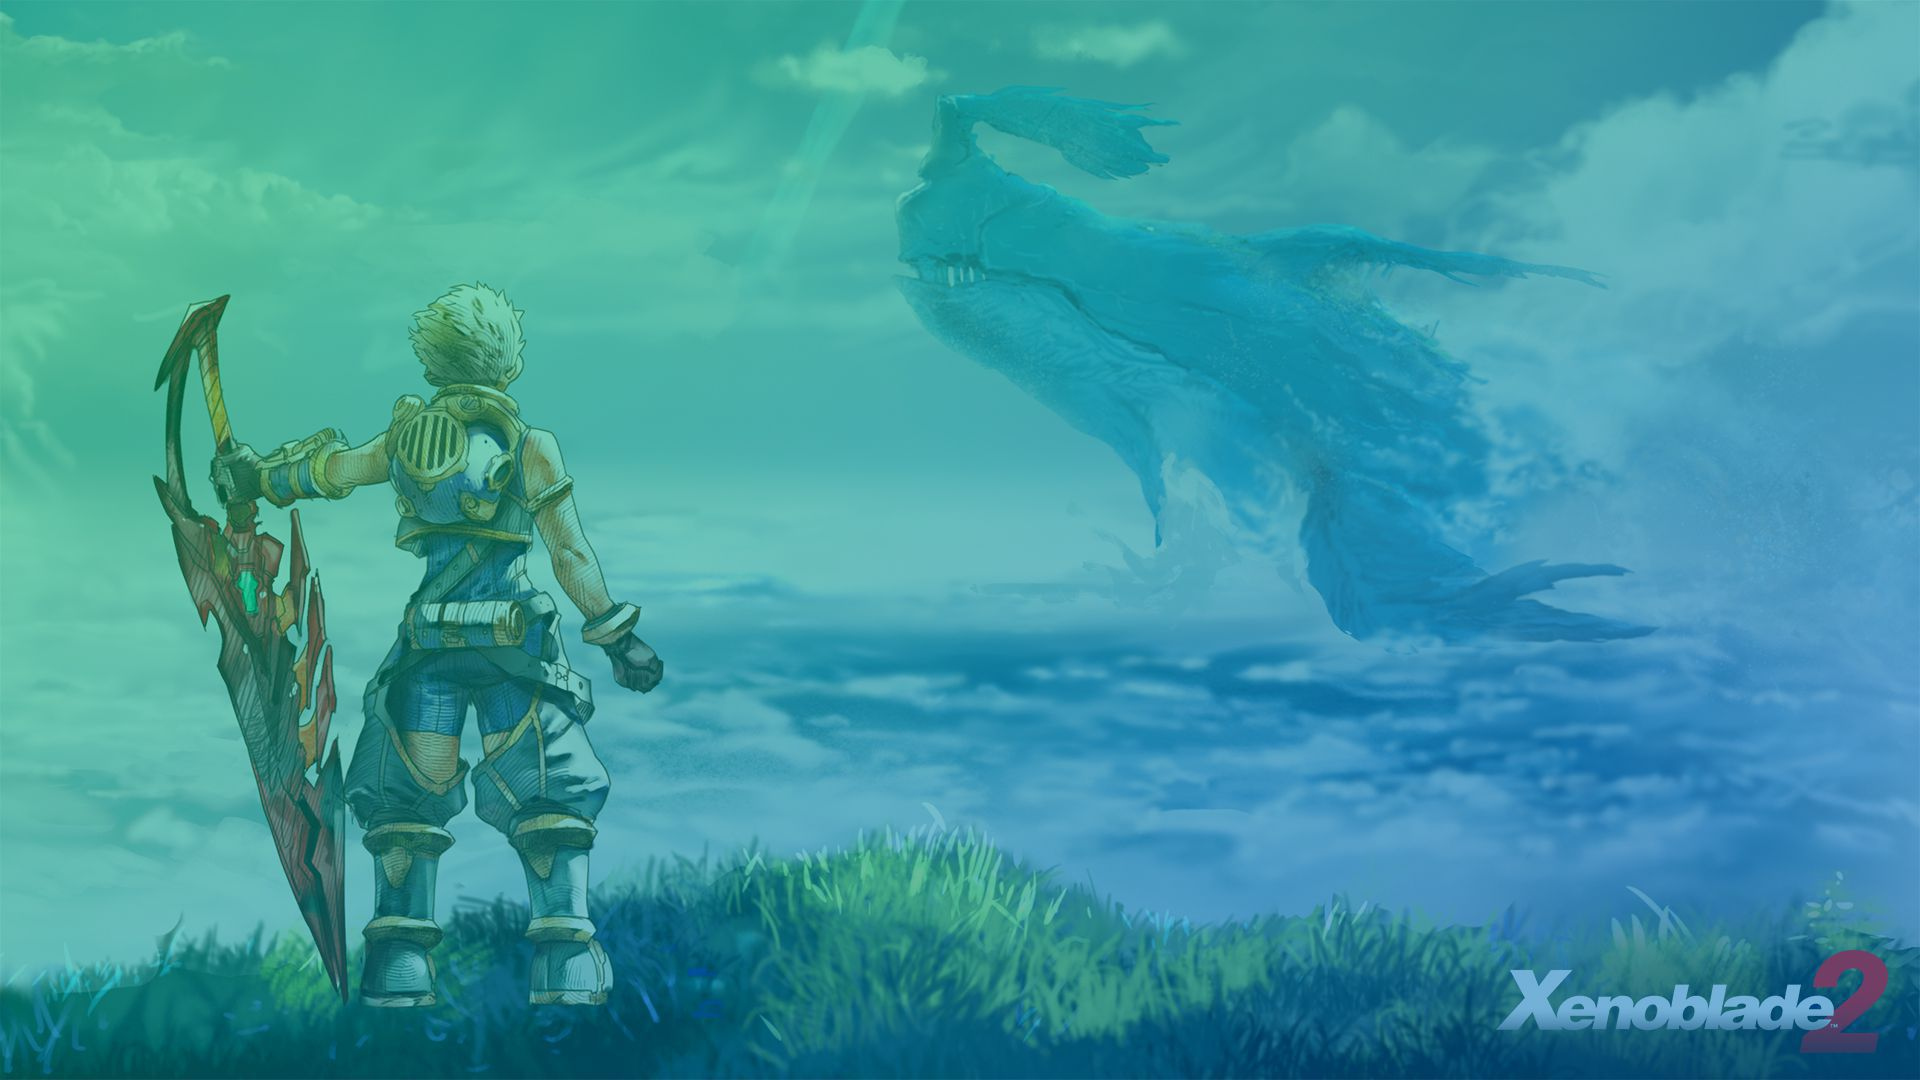 Picture Xenoblade Chronicles 2